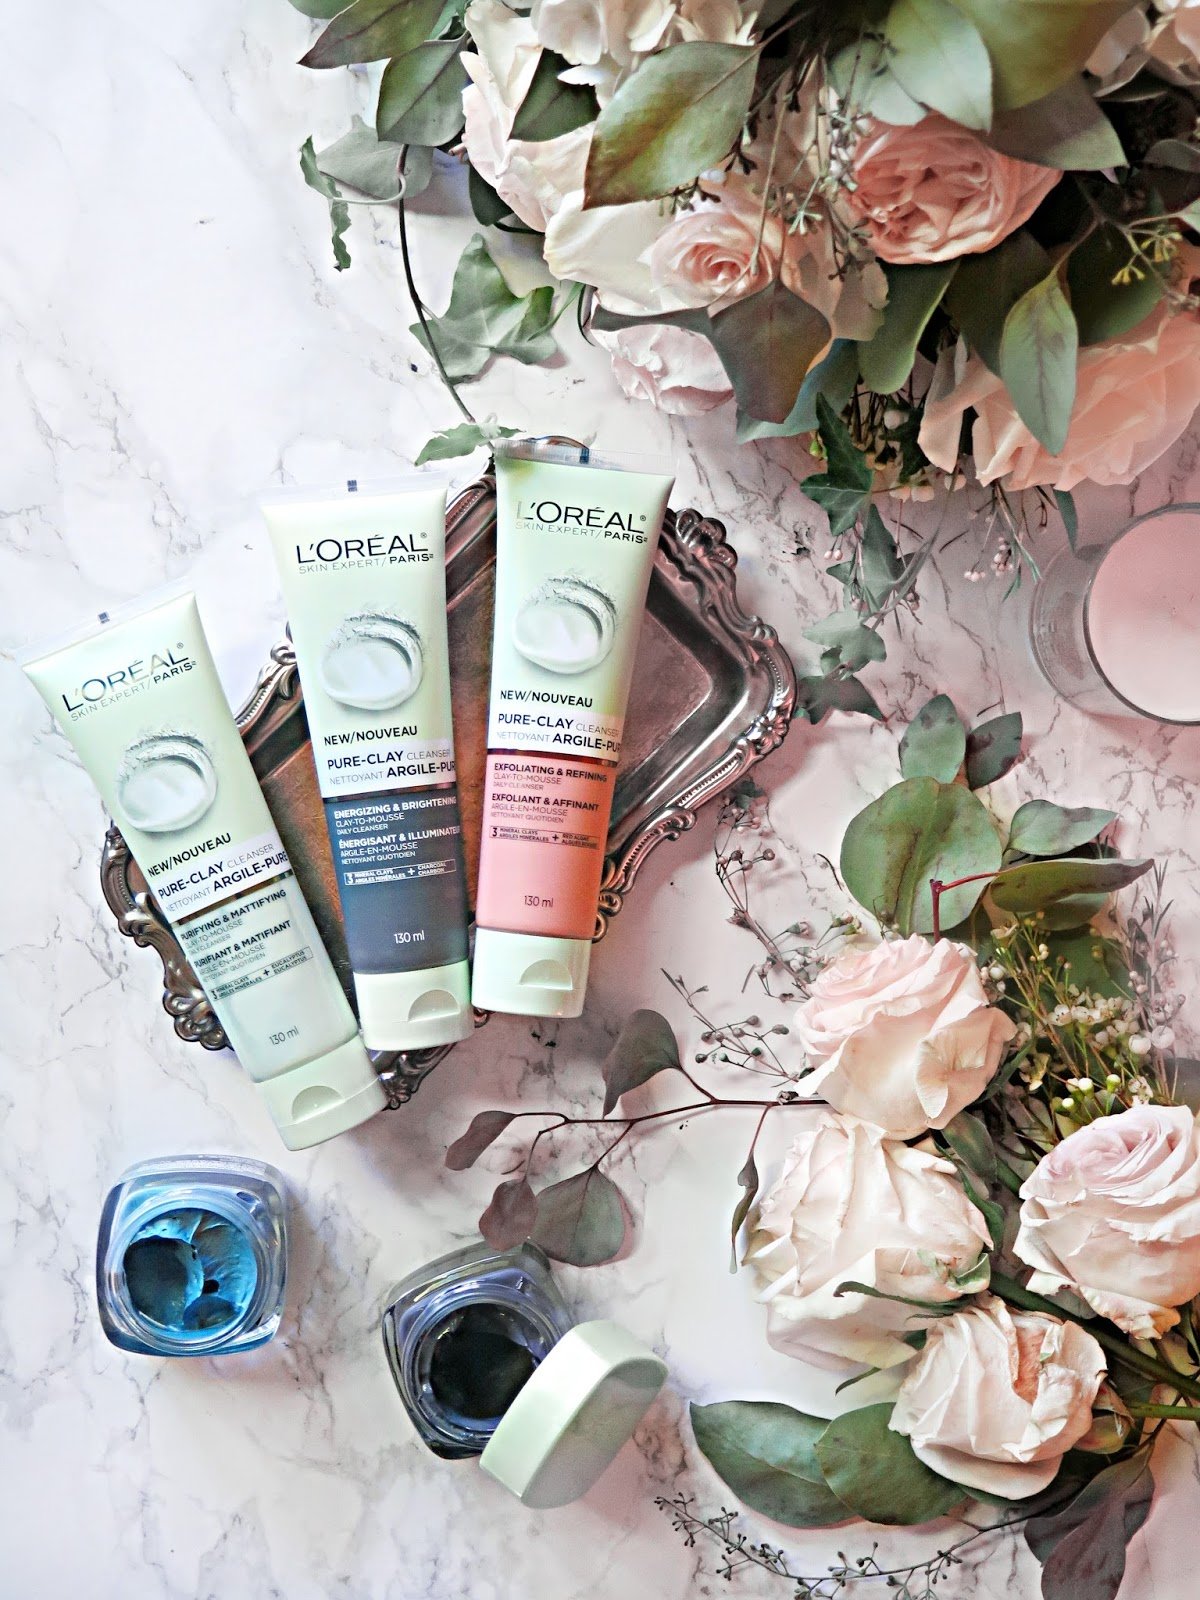 Everyday Clay | NEW L'Oreal Paris Pure Clay Daily Cleansers & The New Pure Clay Comforting & Unifying Mask | Review & Guide | labellesirene.ca